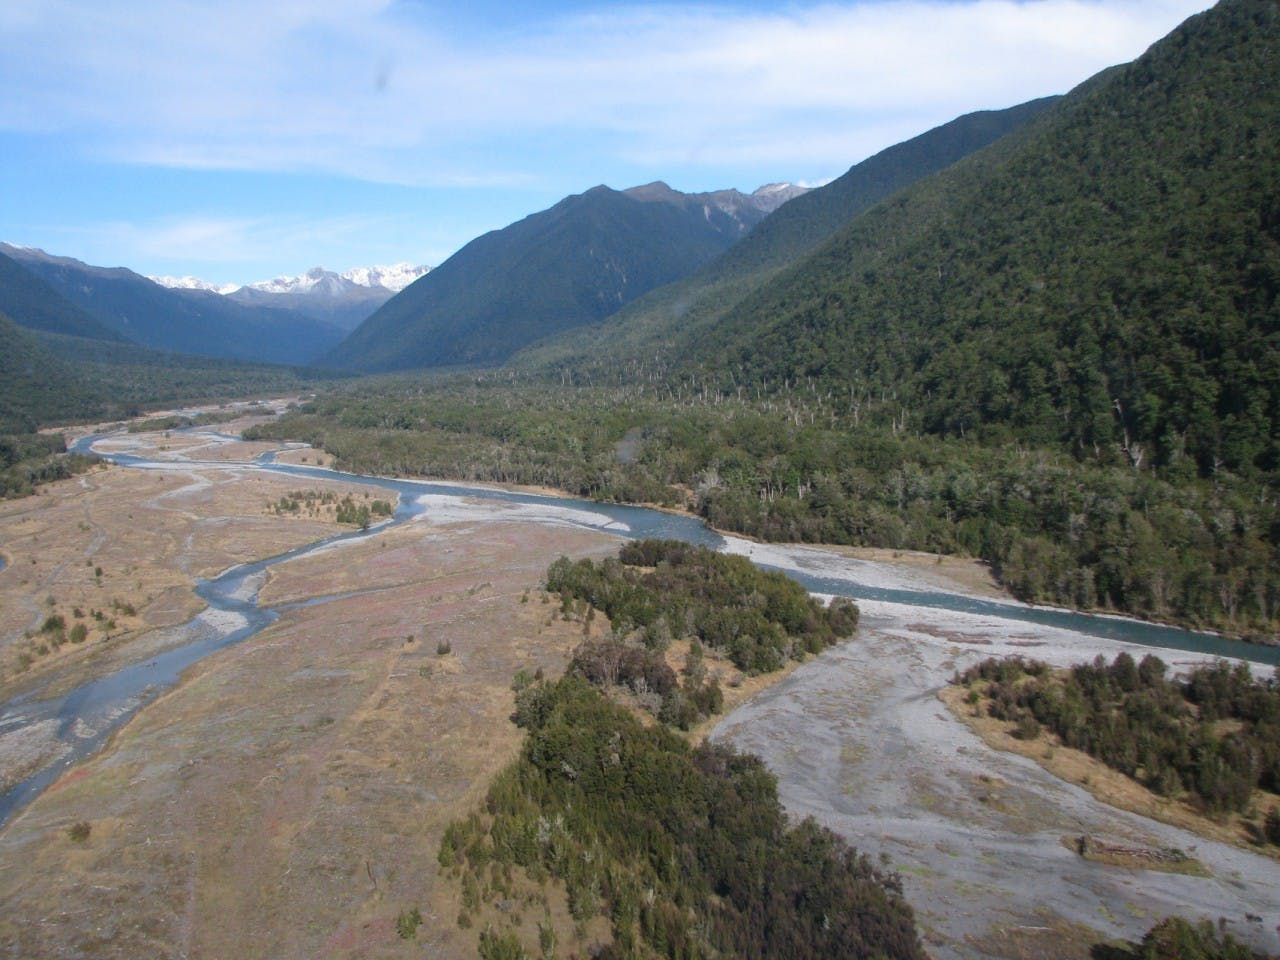 The remote Matakitaki River Valley where Reynolds is believed to have gone missing